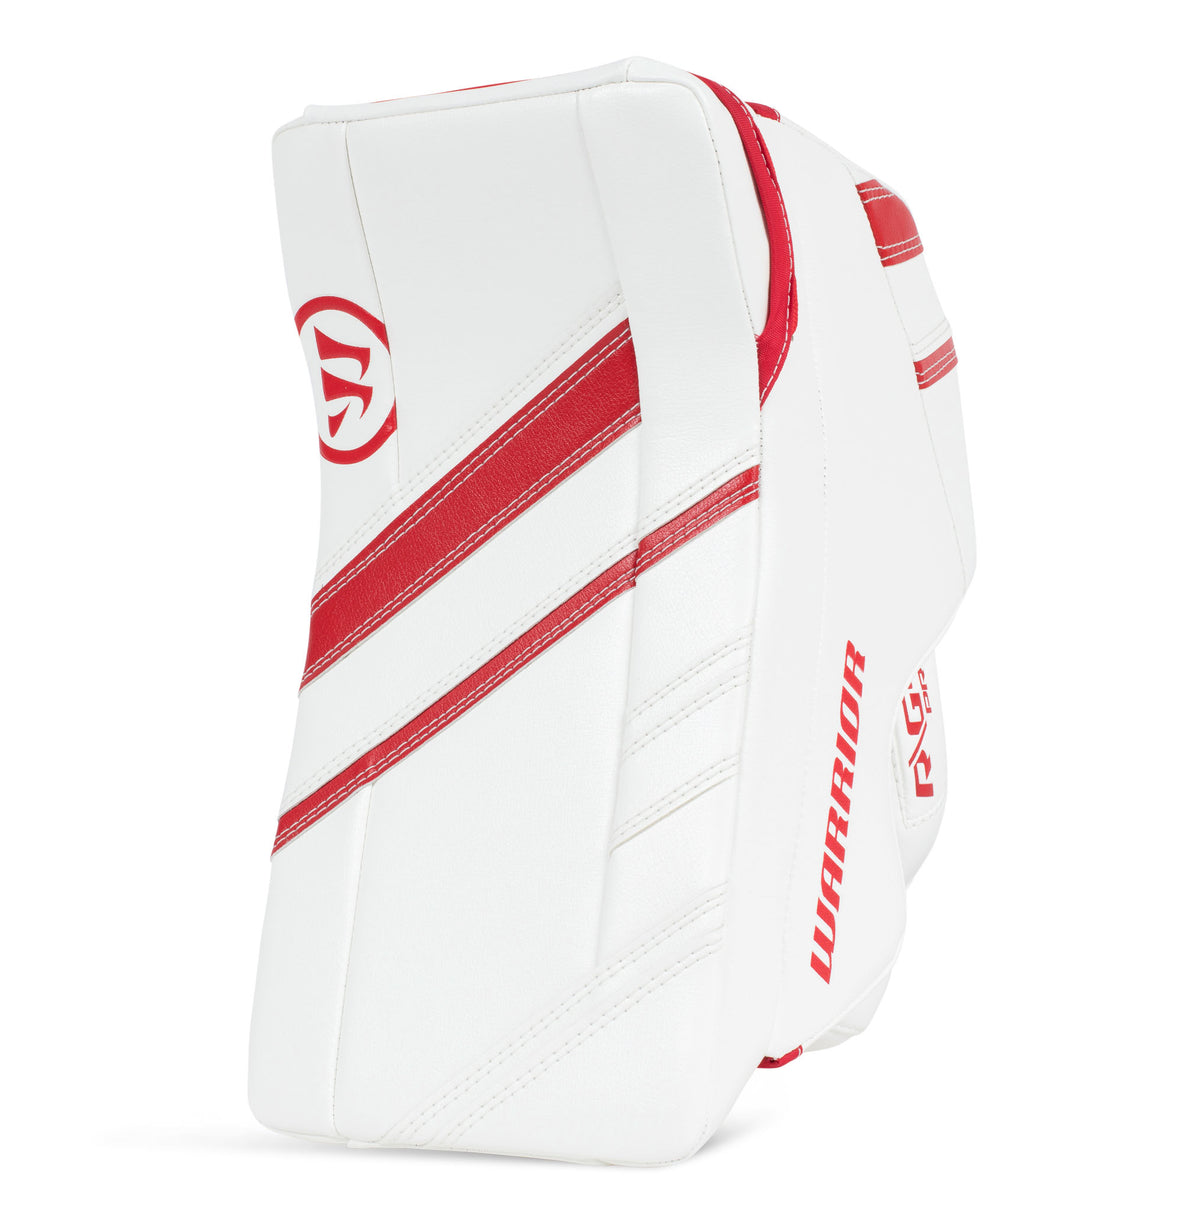 Warrior Ritual G4 Pro Senior Goalie Blocker